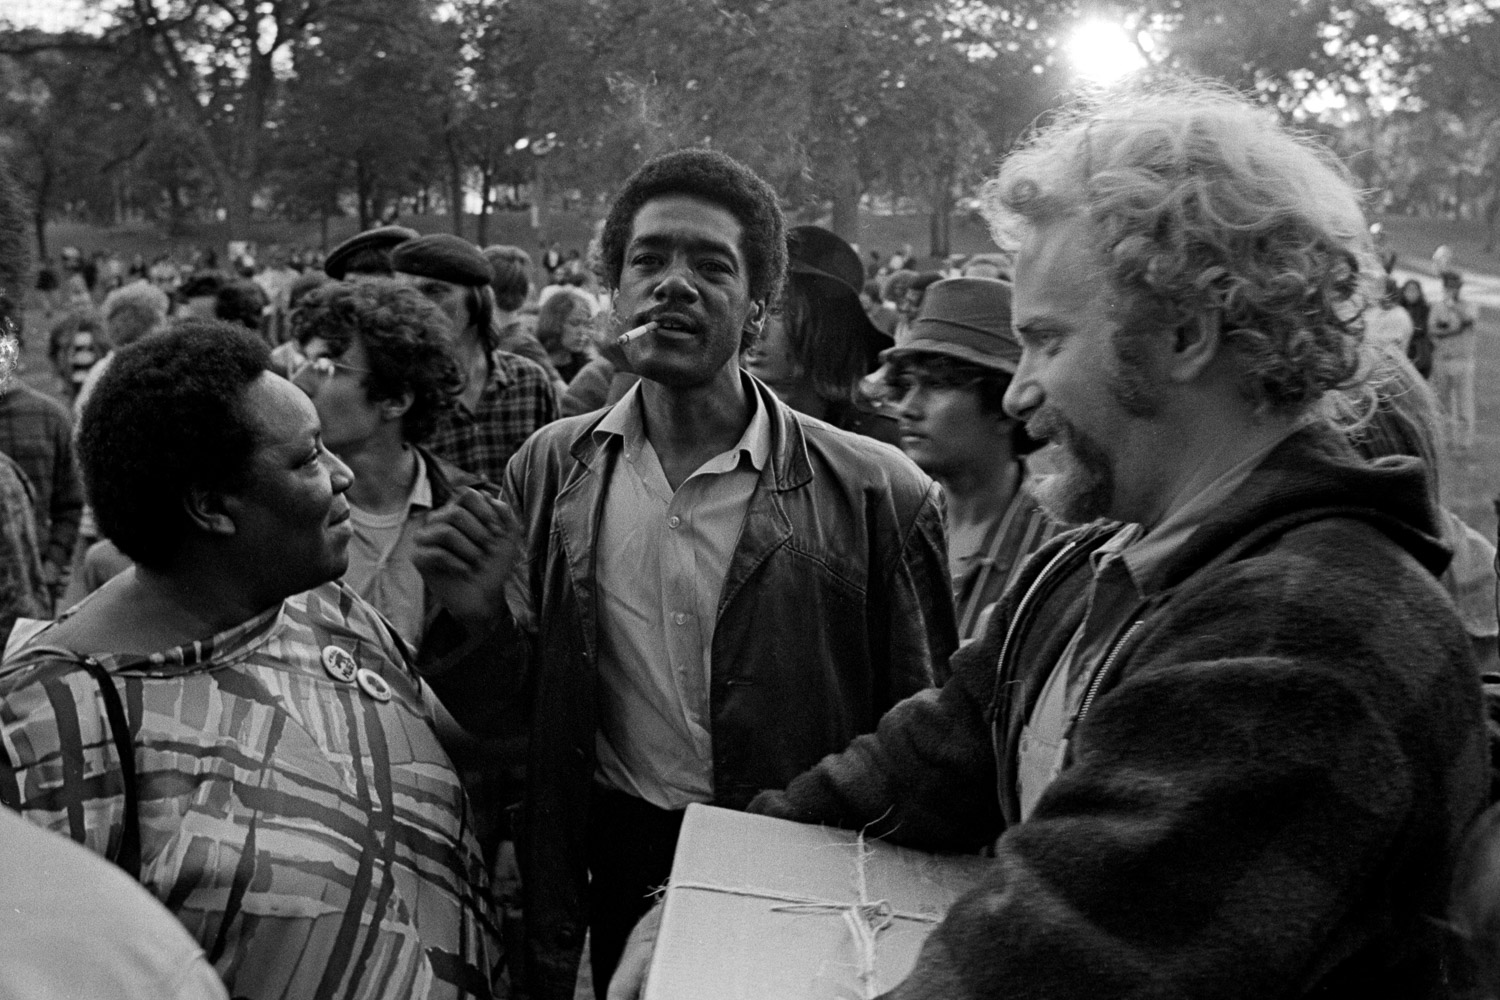 Stew Albert (right), Bobby Seale (center) and an unidentified leader of the southern civil rights movement (left) arrive at Lincoln Park to speak.